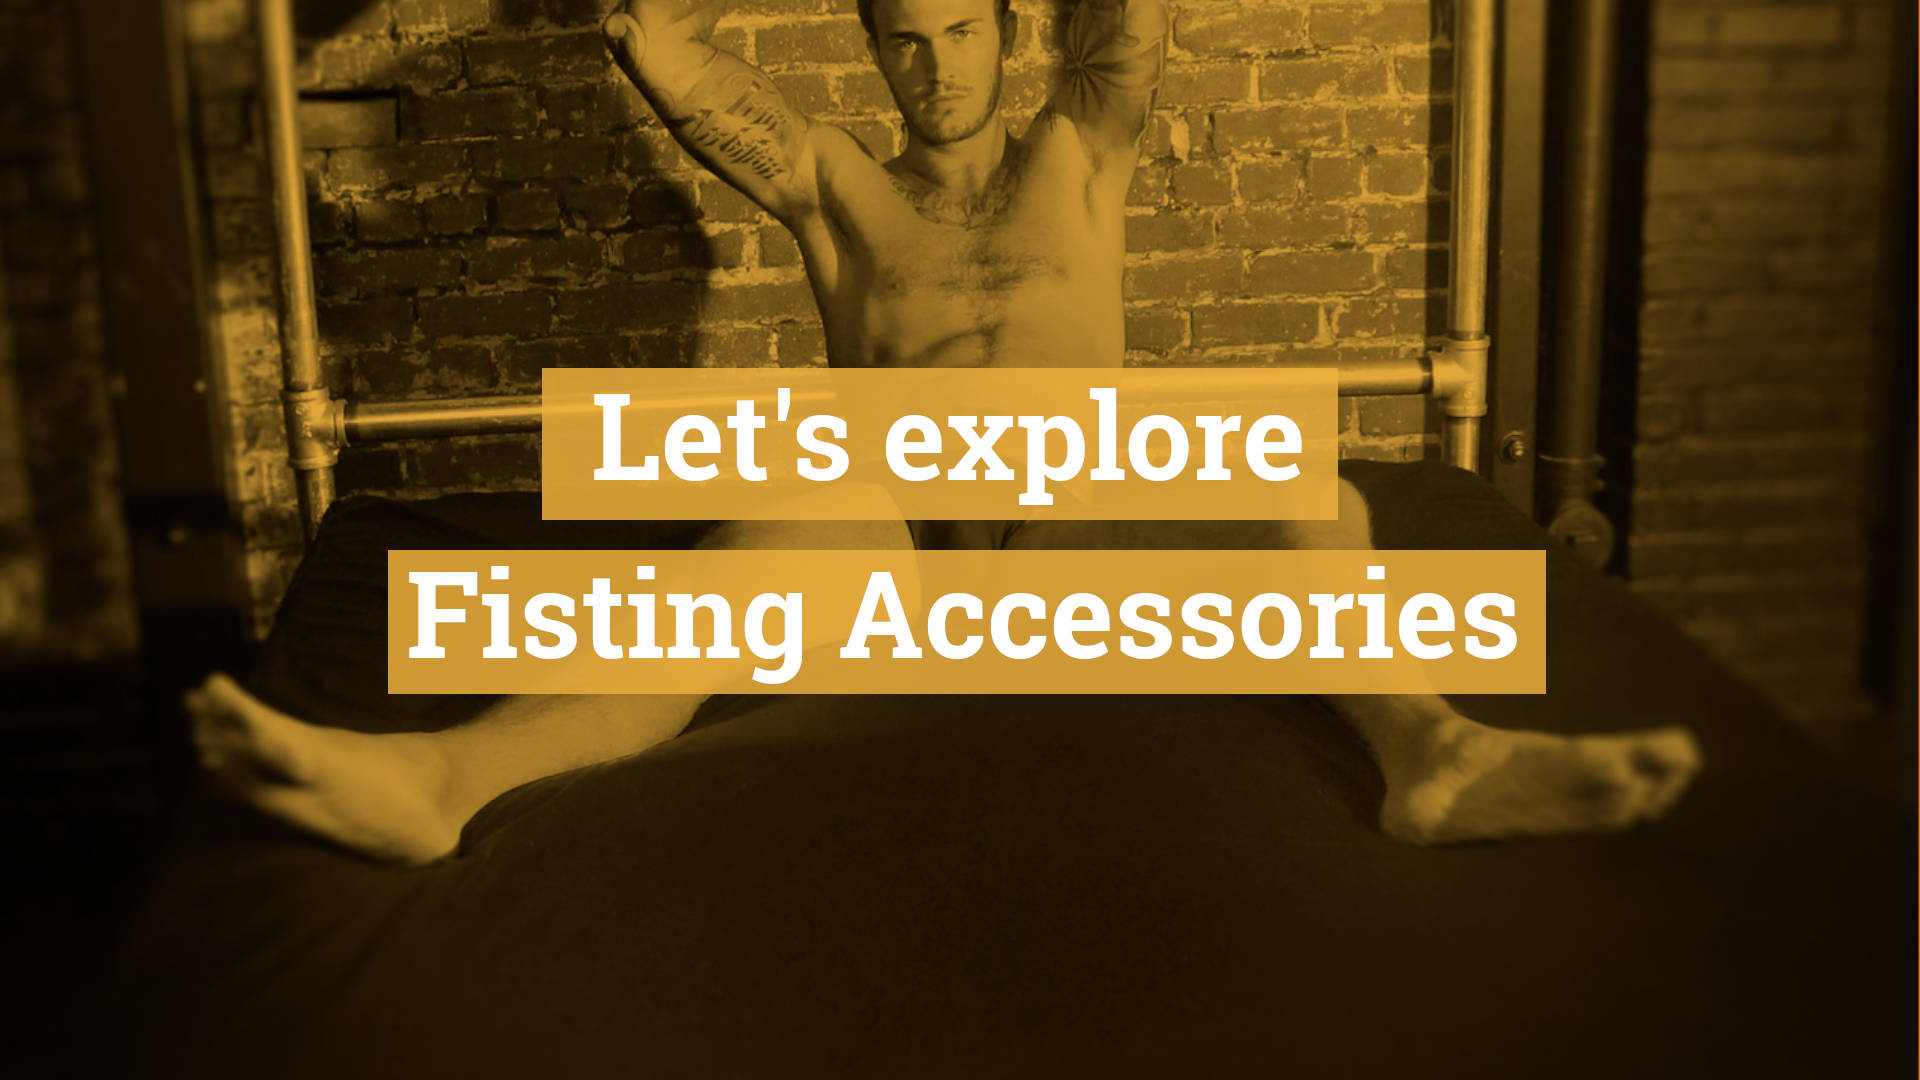 Let's explore Fisting Accessories - How to Protect Furniture and Textiles During a Fisting